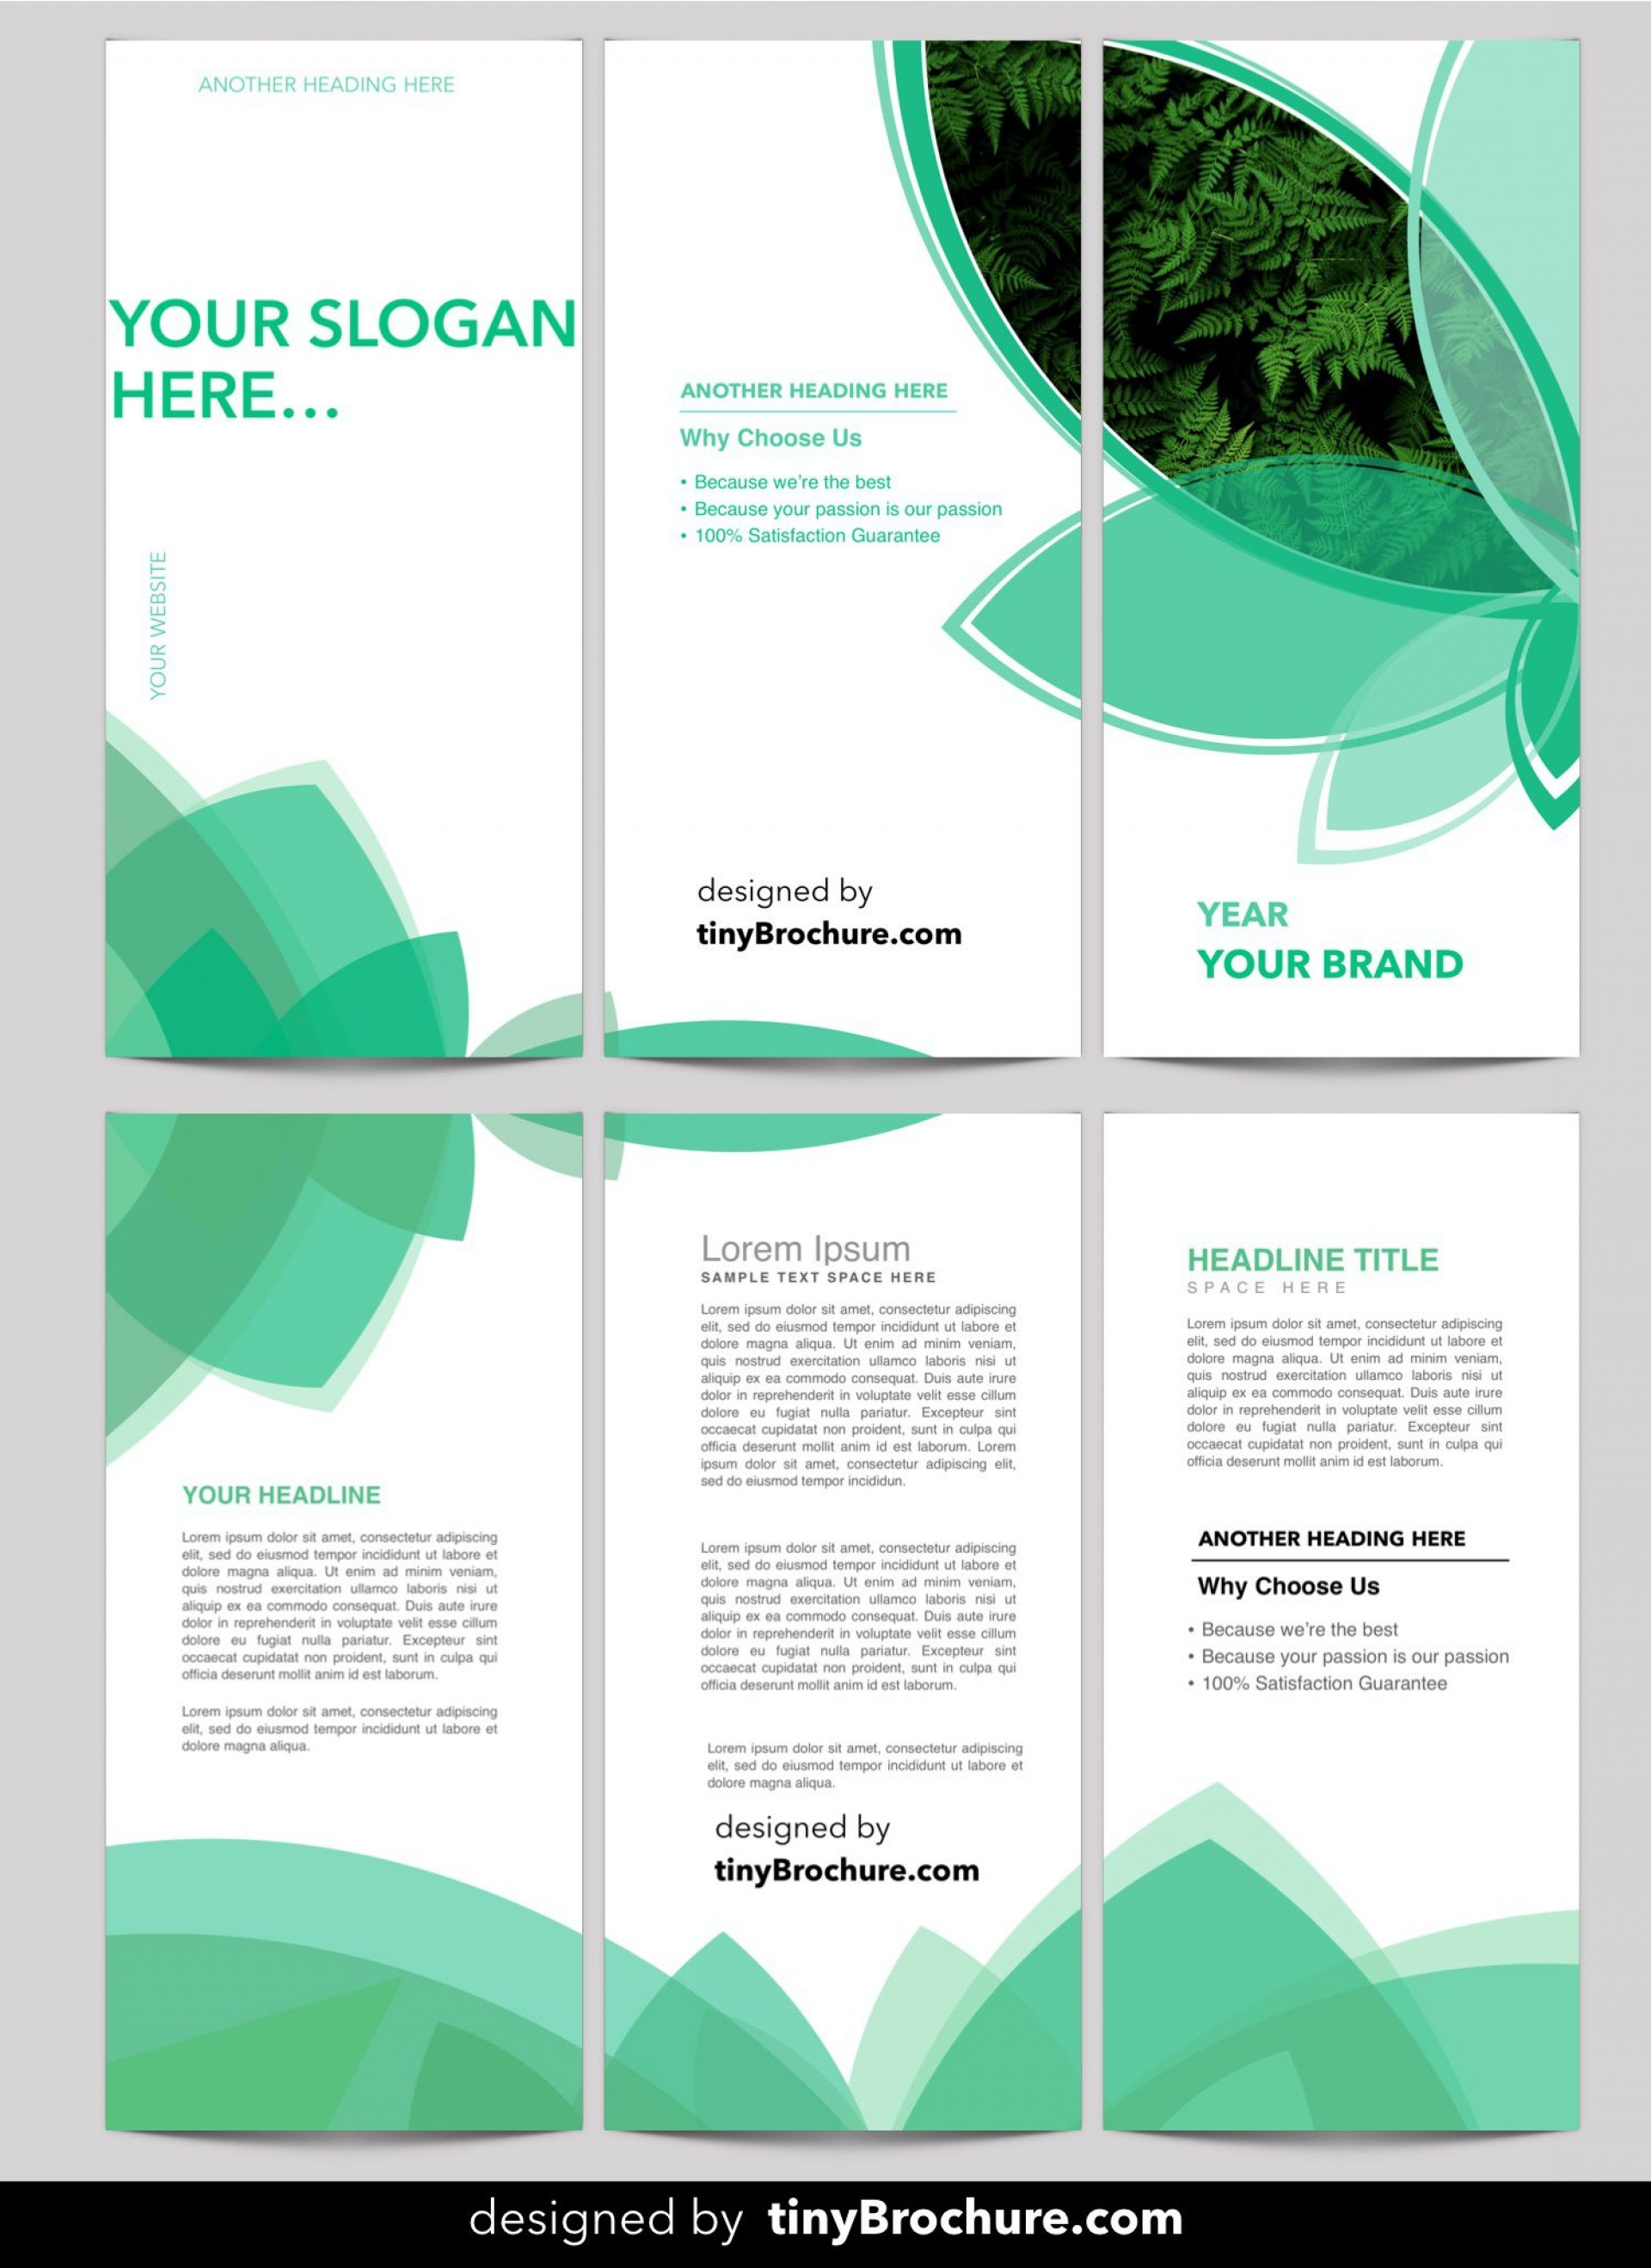 000 Breathtaking Brochure Template Free Download High Definition  Microsoft Publisher Corporate Psd For Adobe Illustrator1920